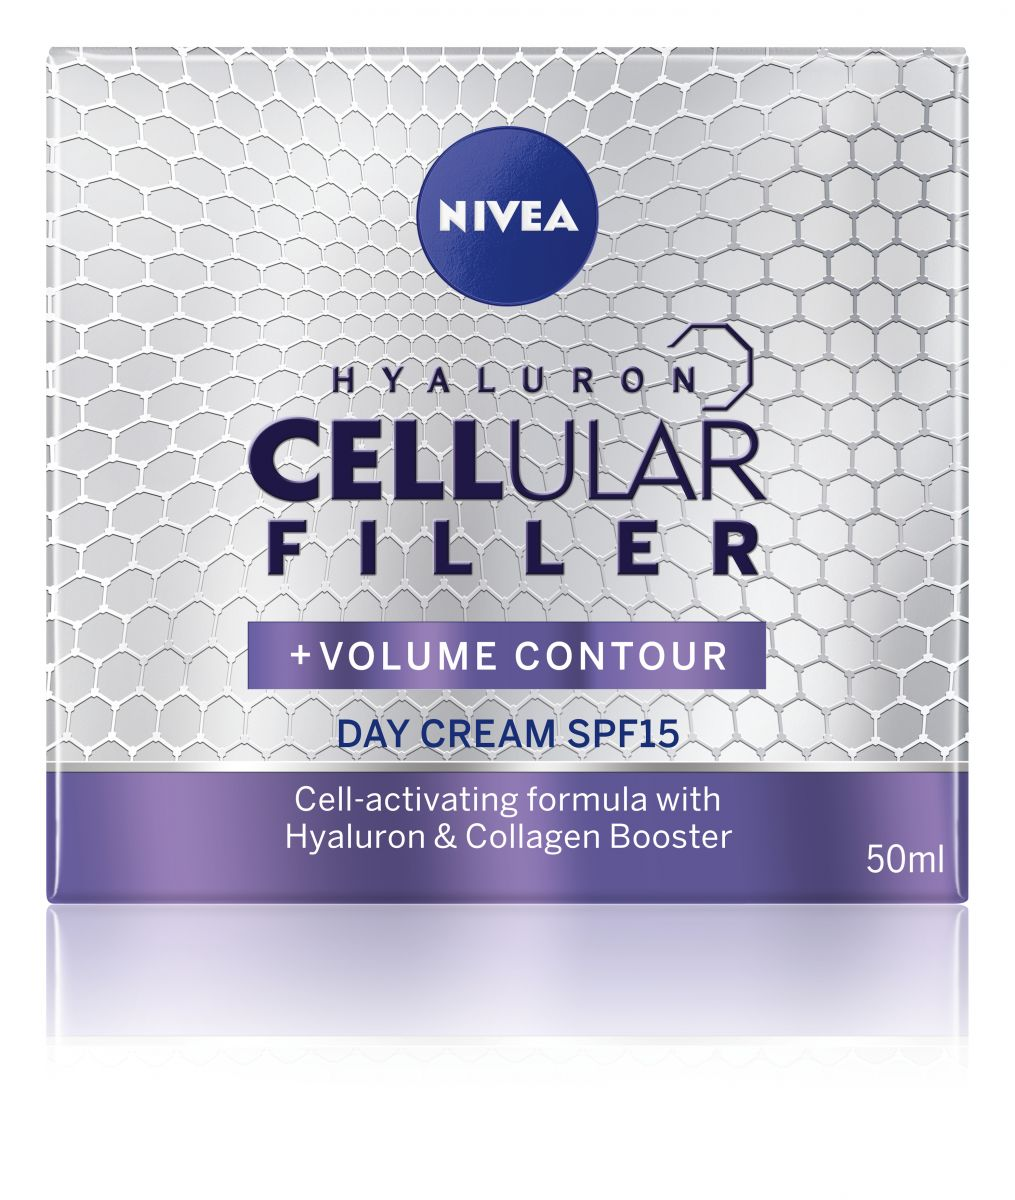 89268_Cellular_HyaluronFiller_Volume_Contour_Day_Care_SPF_15_FoBo_frontal_layer_Print (300 dpi)